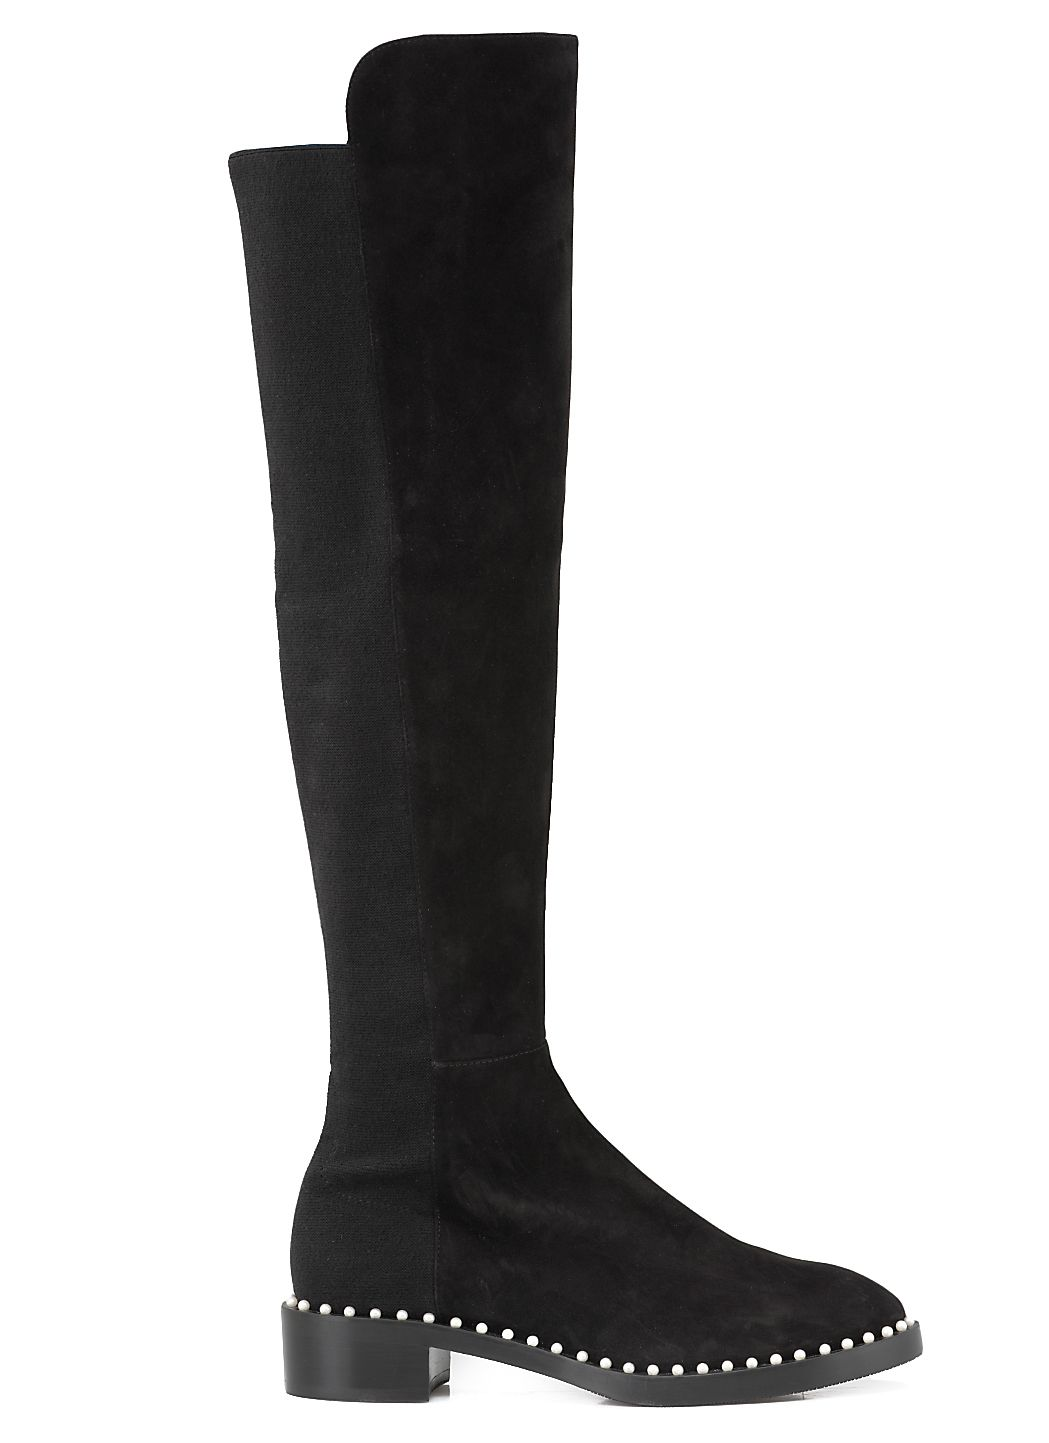 5050 Pearlsue Elastic Boots